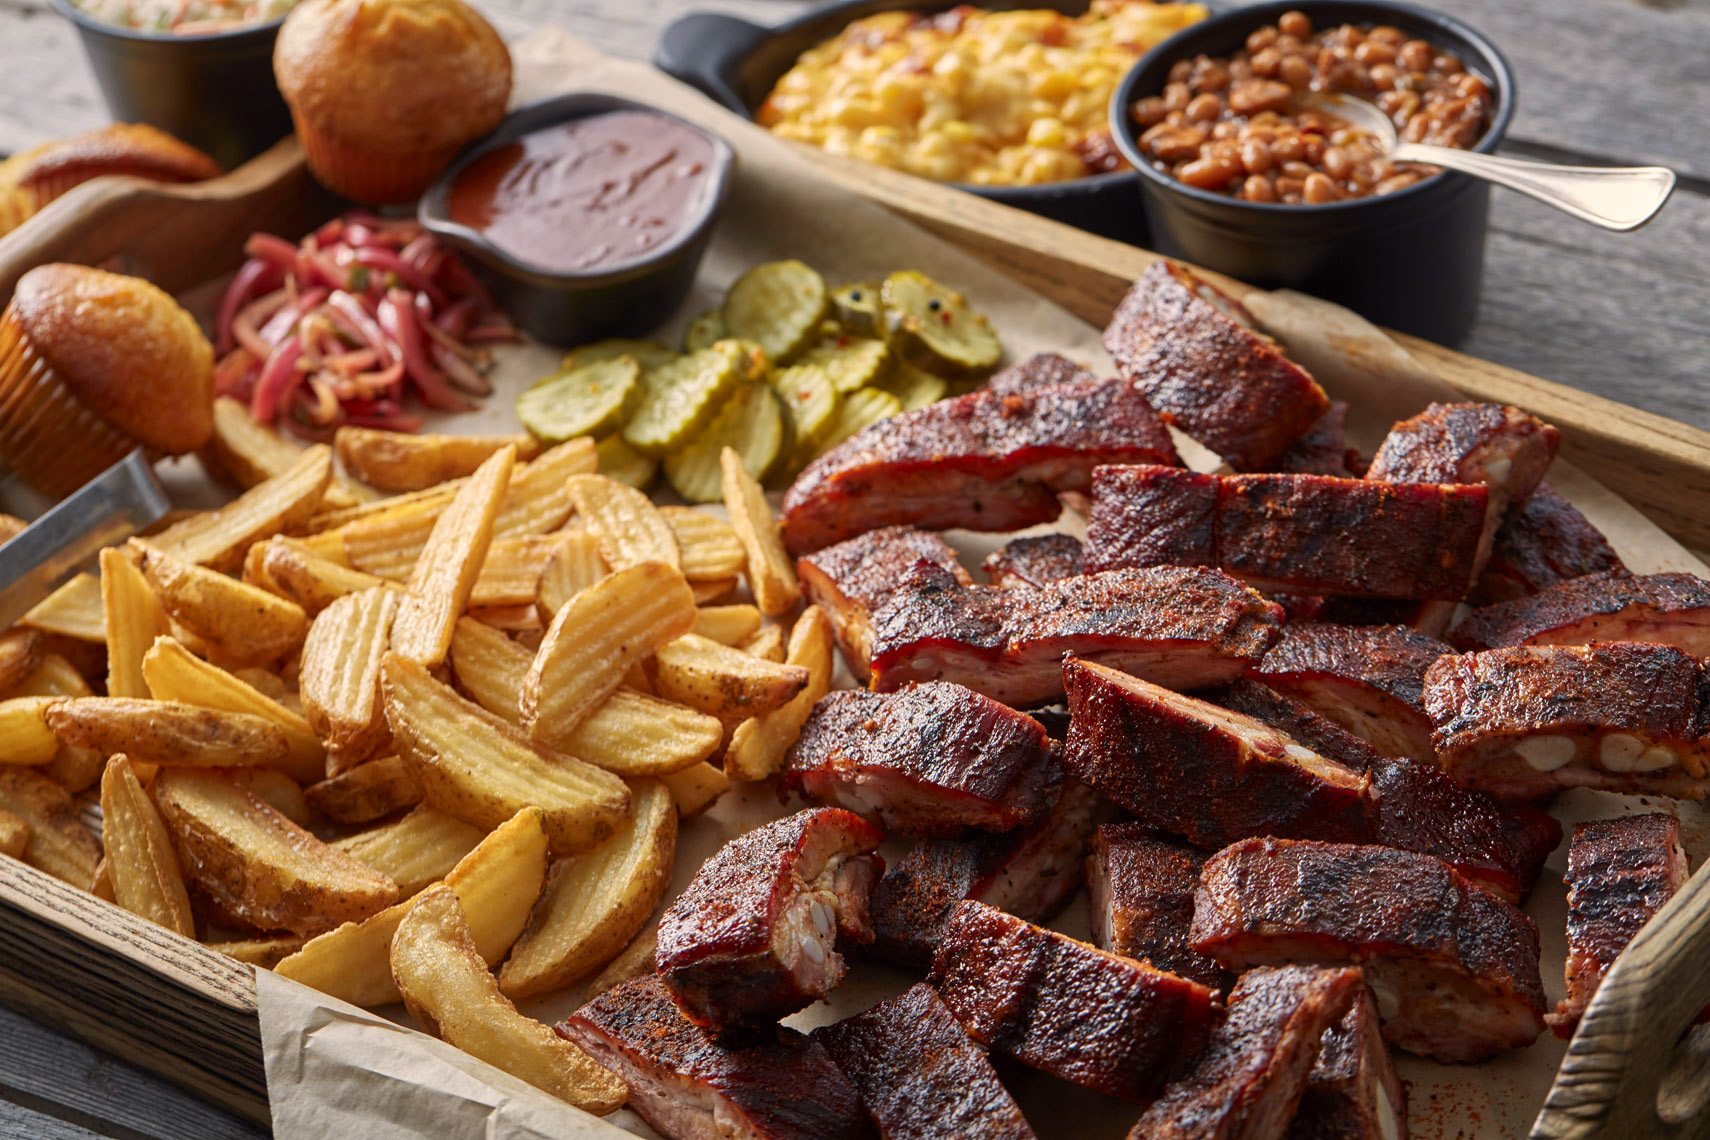 BBQ ribs/potato wedges/brown beans/food photography